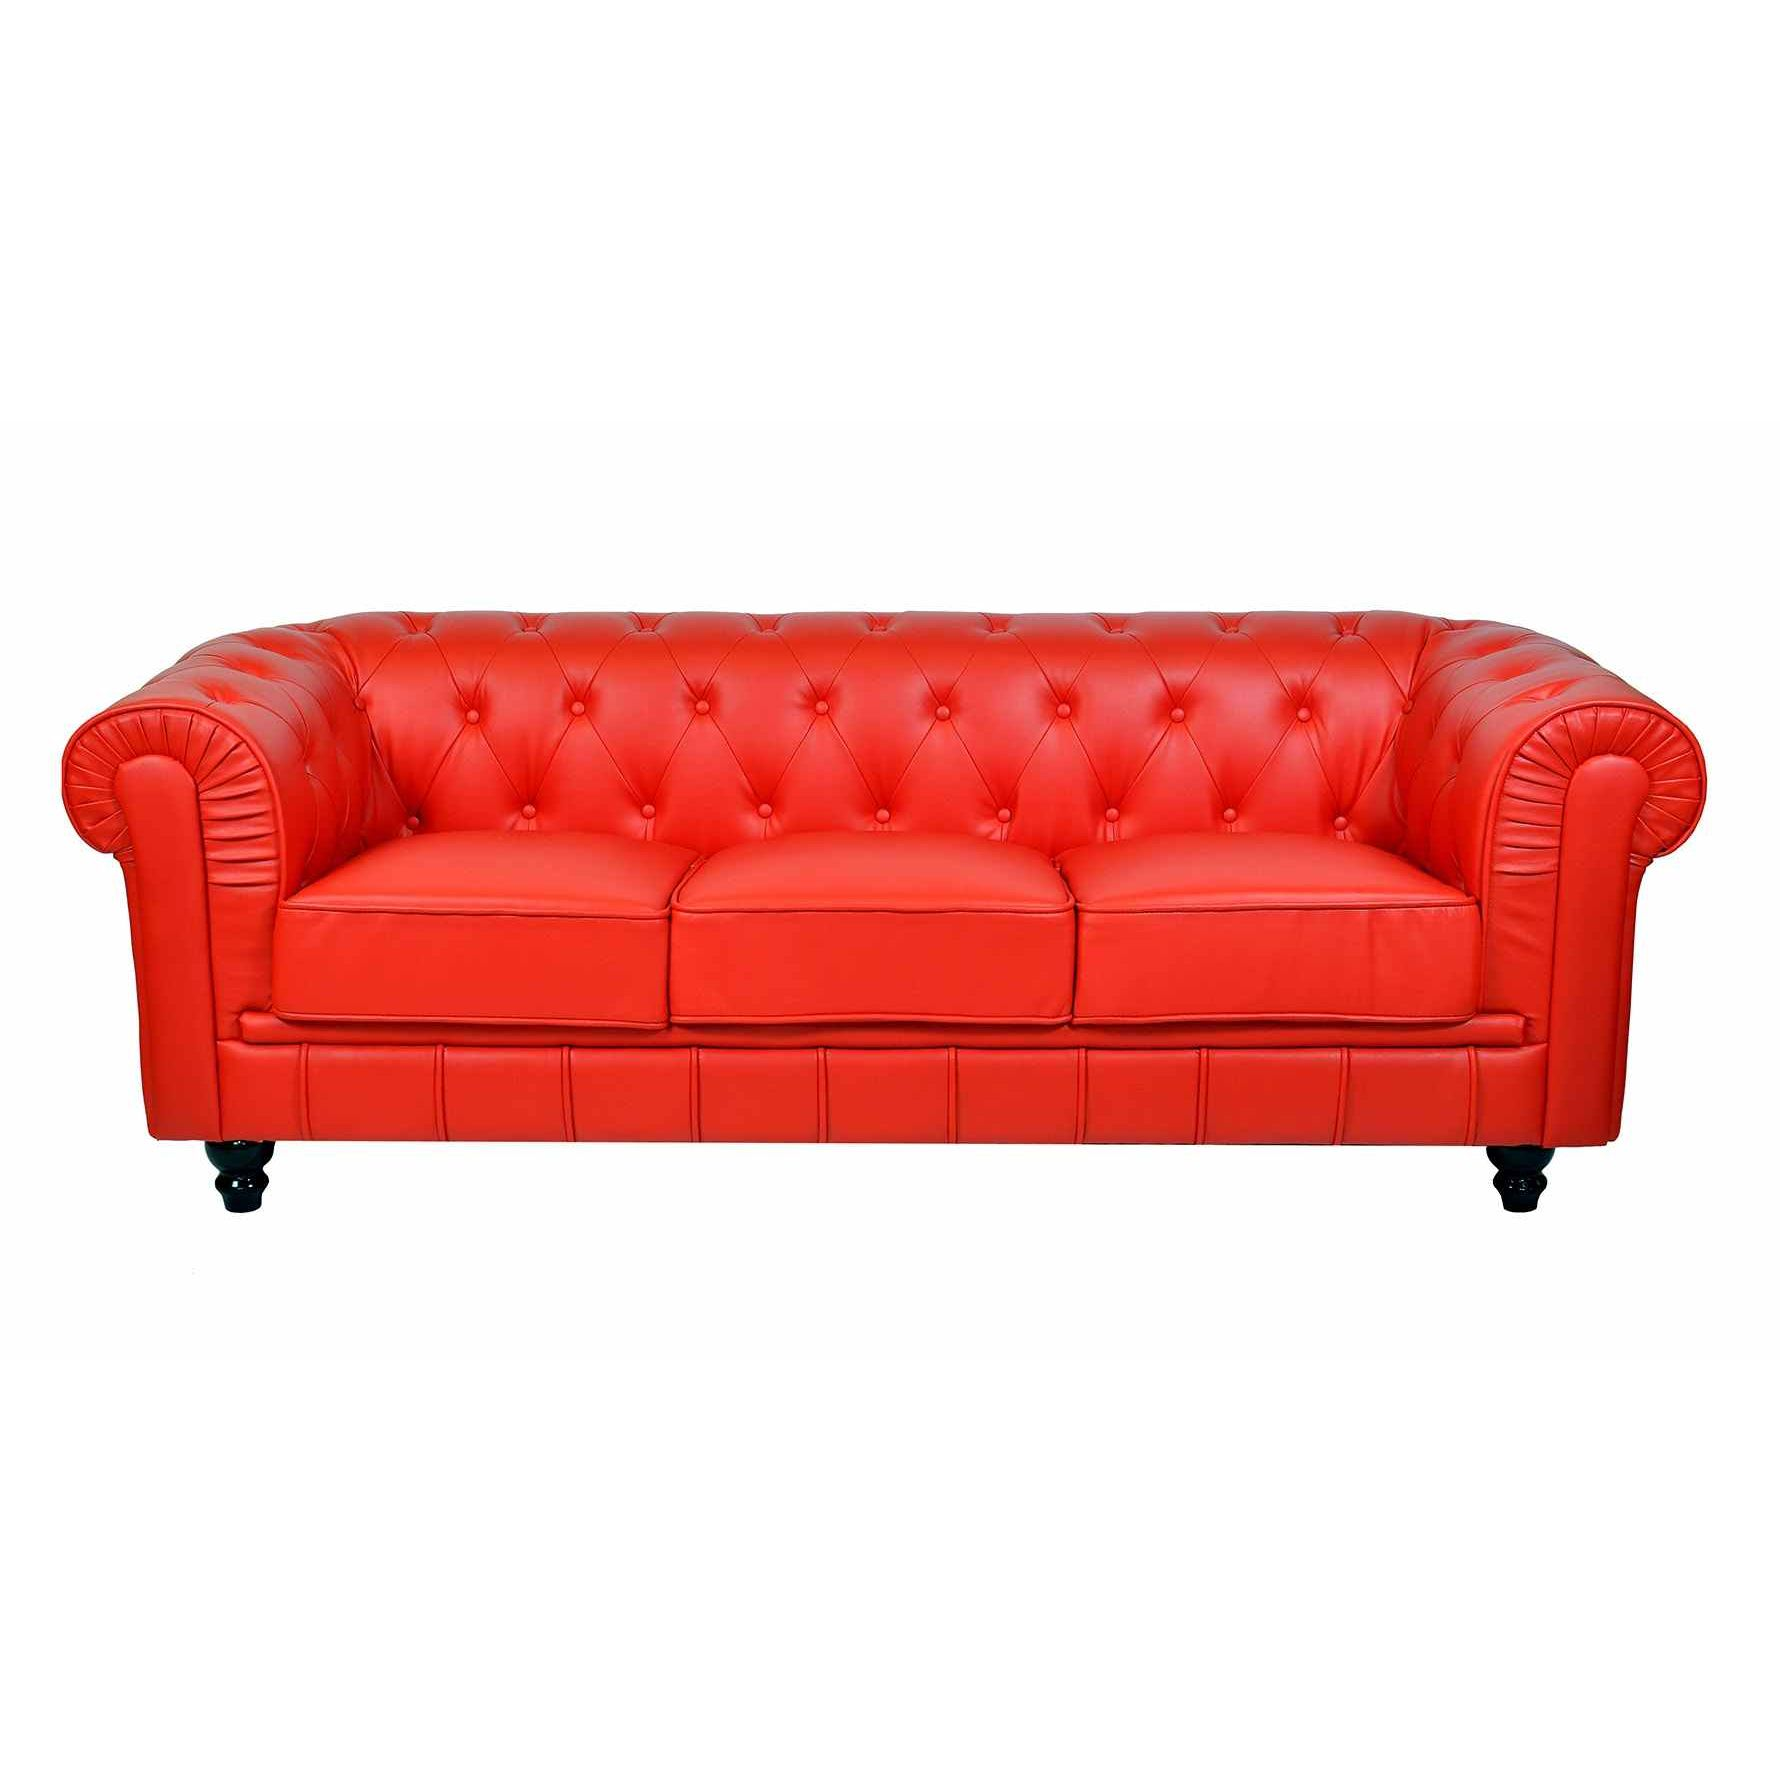 Deco in paris canape chesterfield 3 places rouge can for Canape rouge